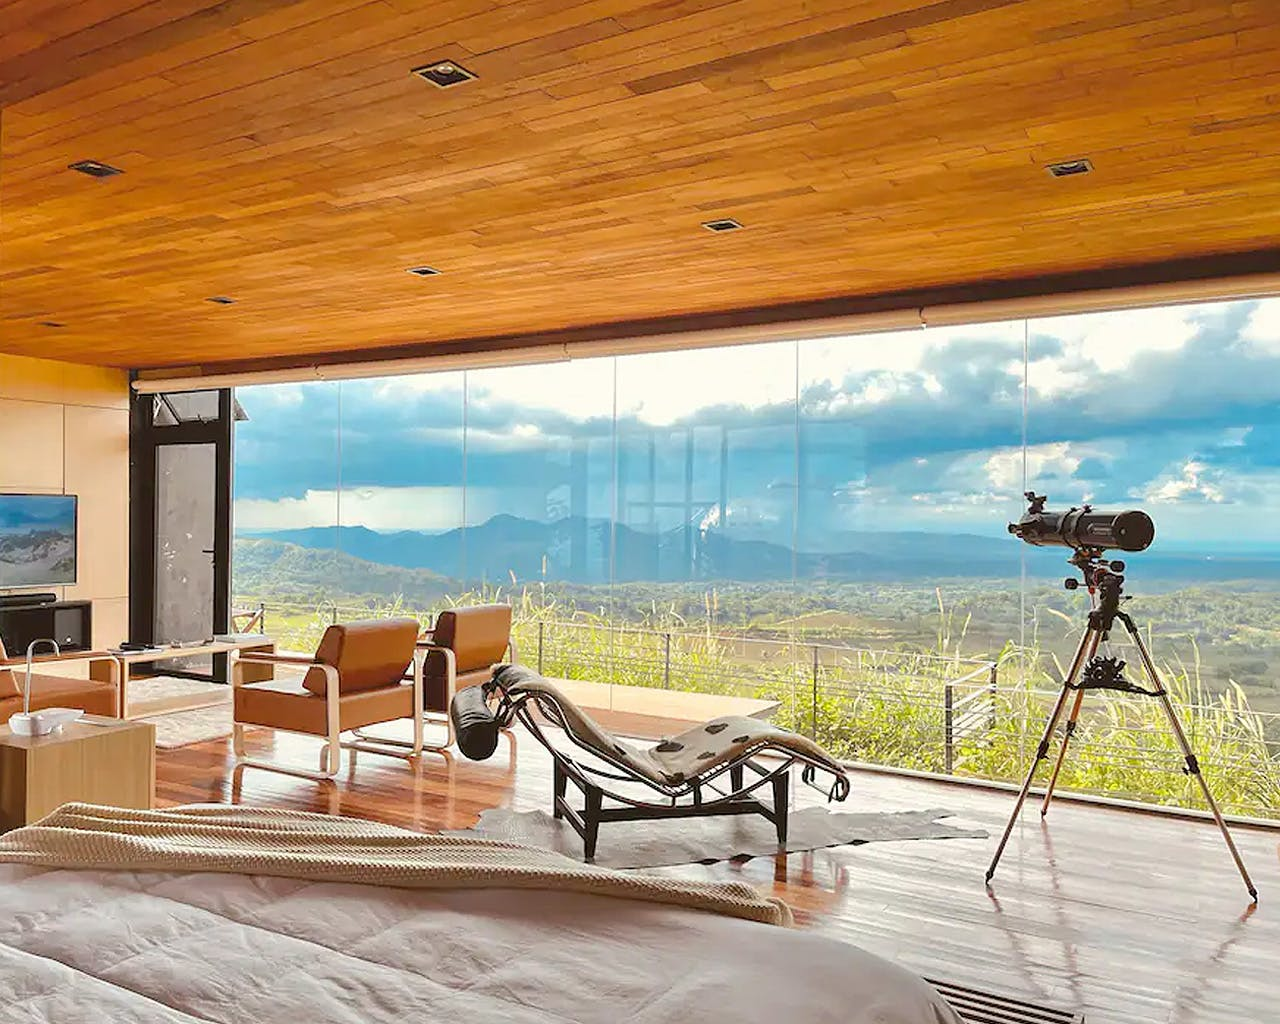 Work From Paradise: Take A Look At These 7 Airbnbs Best For Working Remote